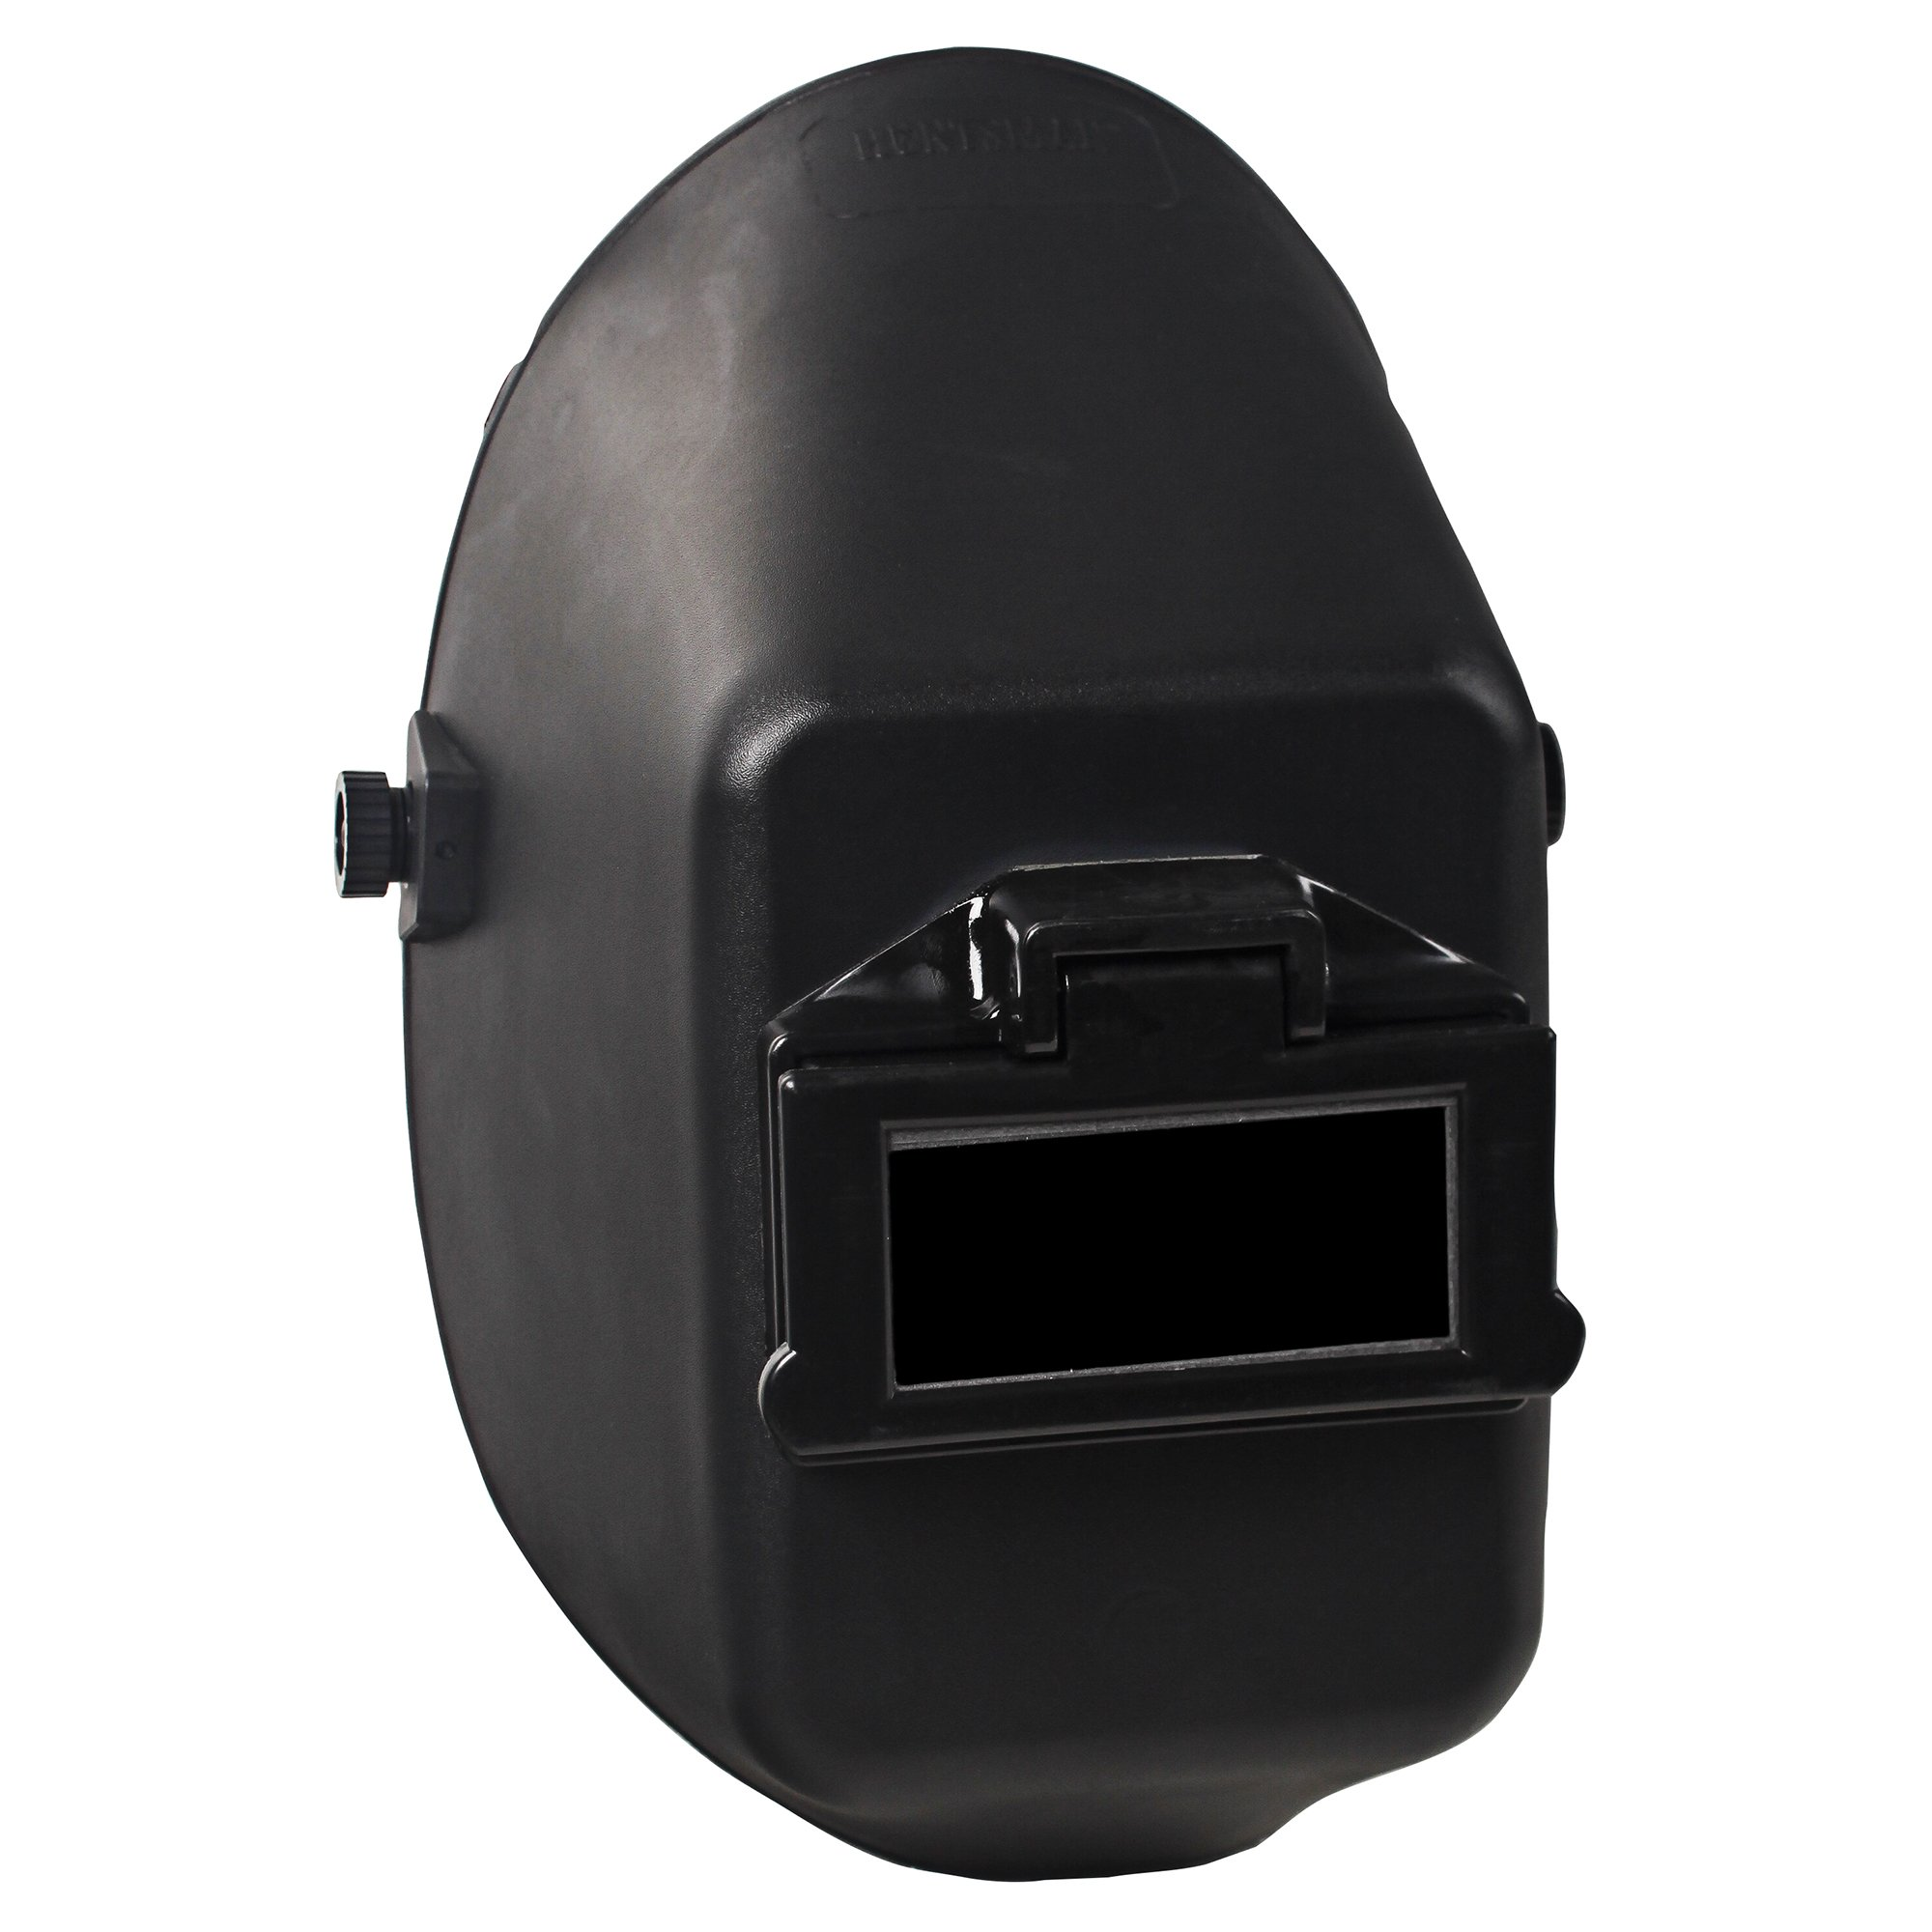 Jackson Safety W10 Passive Lift-Front Welding Helmet (14534), W10 930P with Shade 10 Filter, Black, 4 / Case